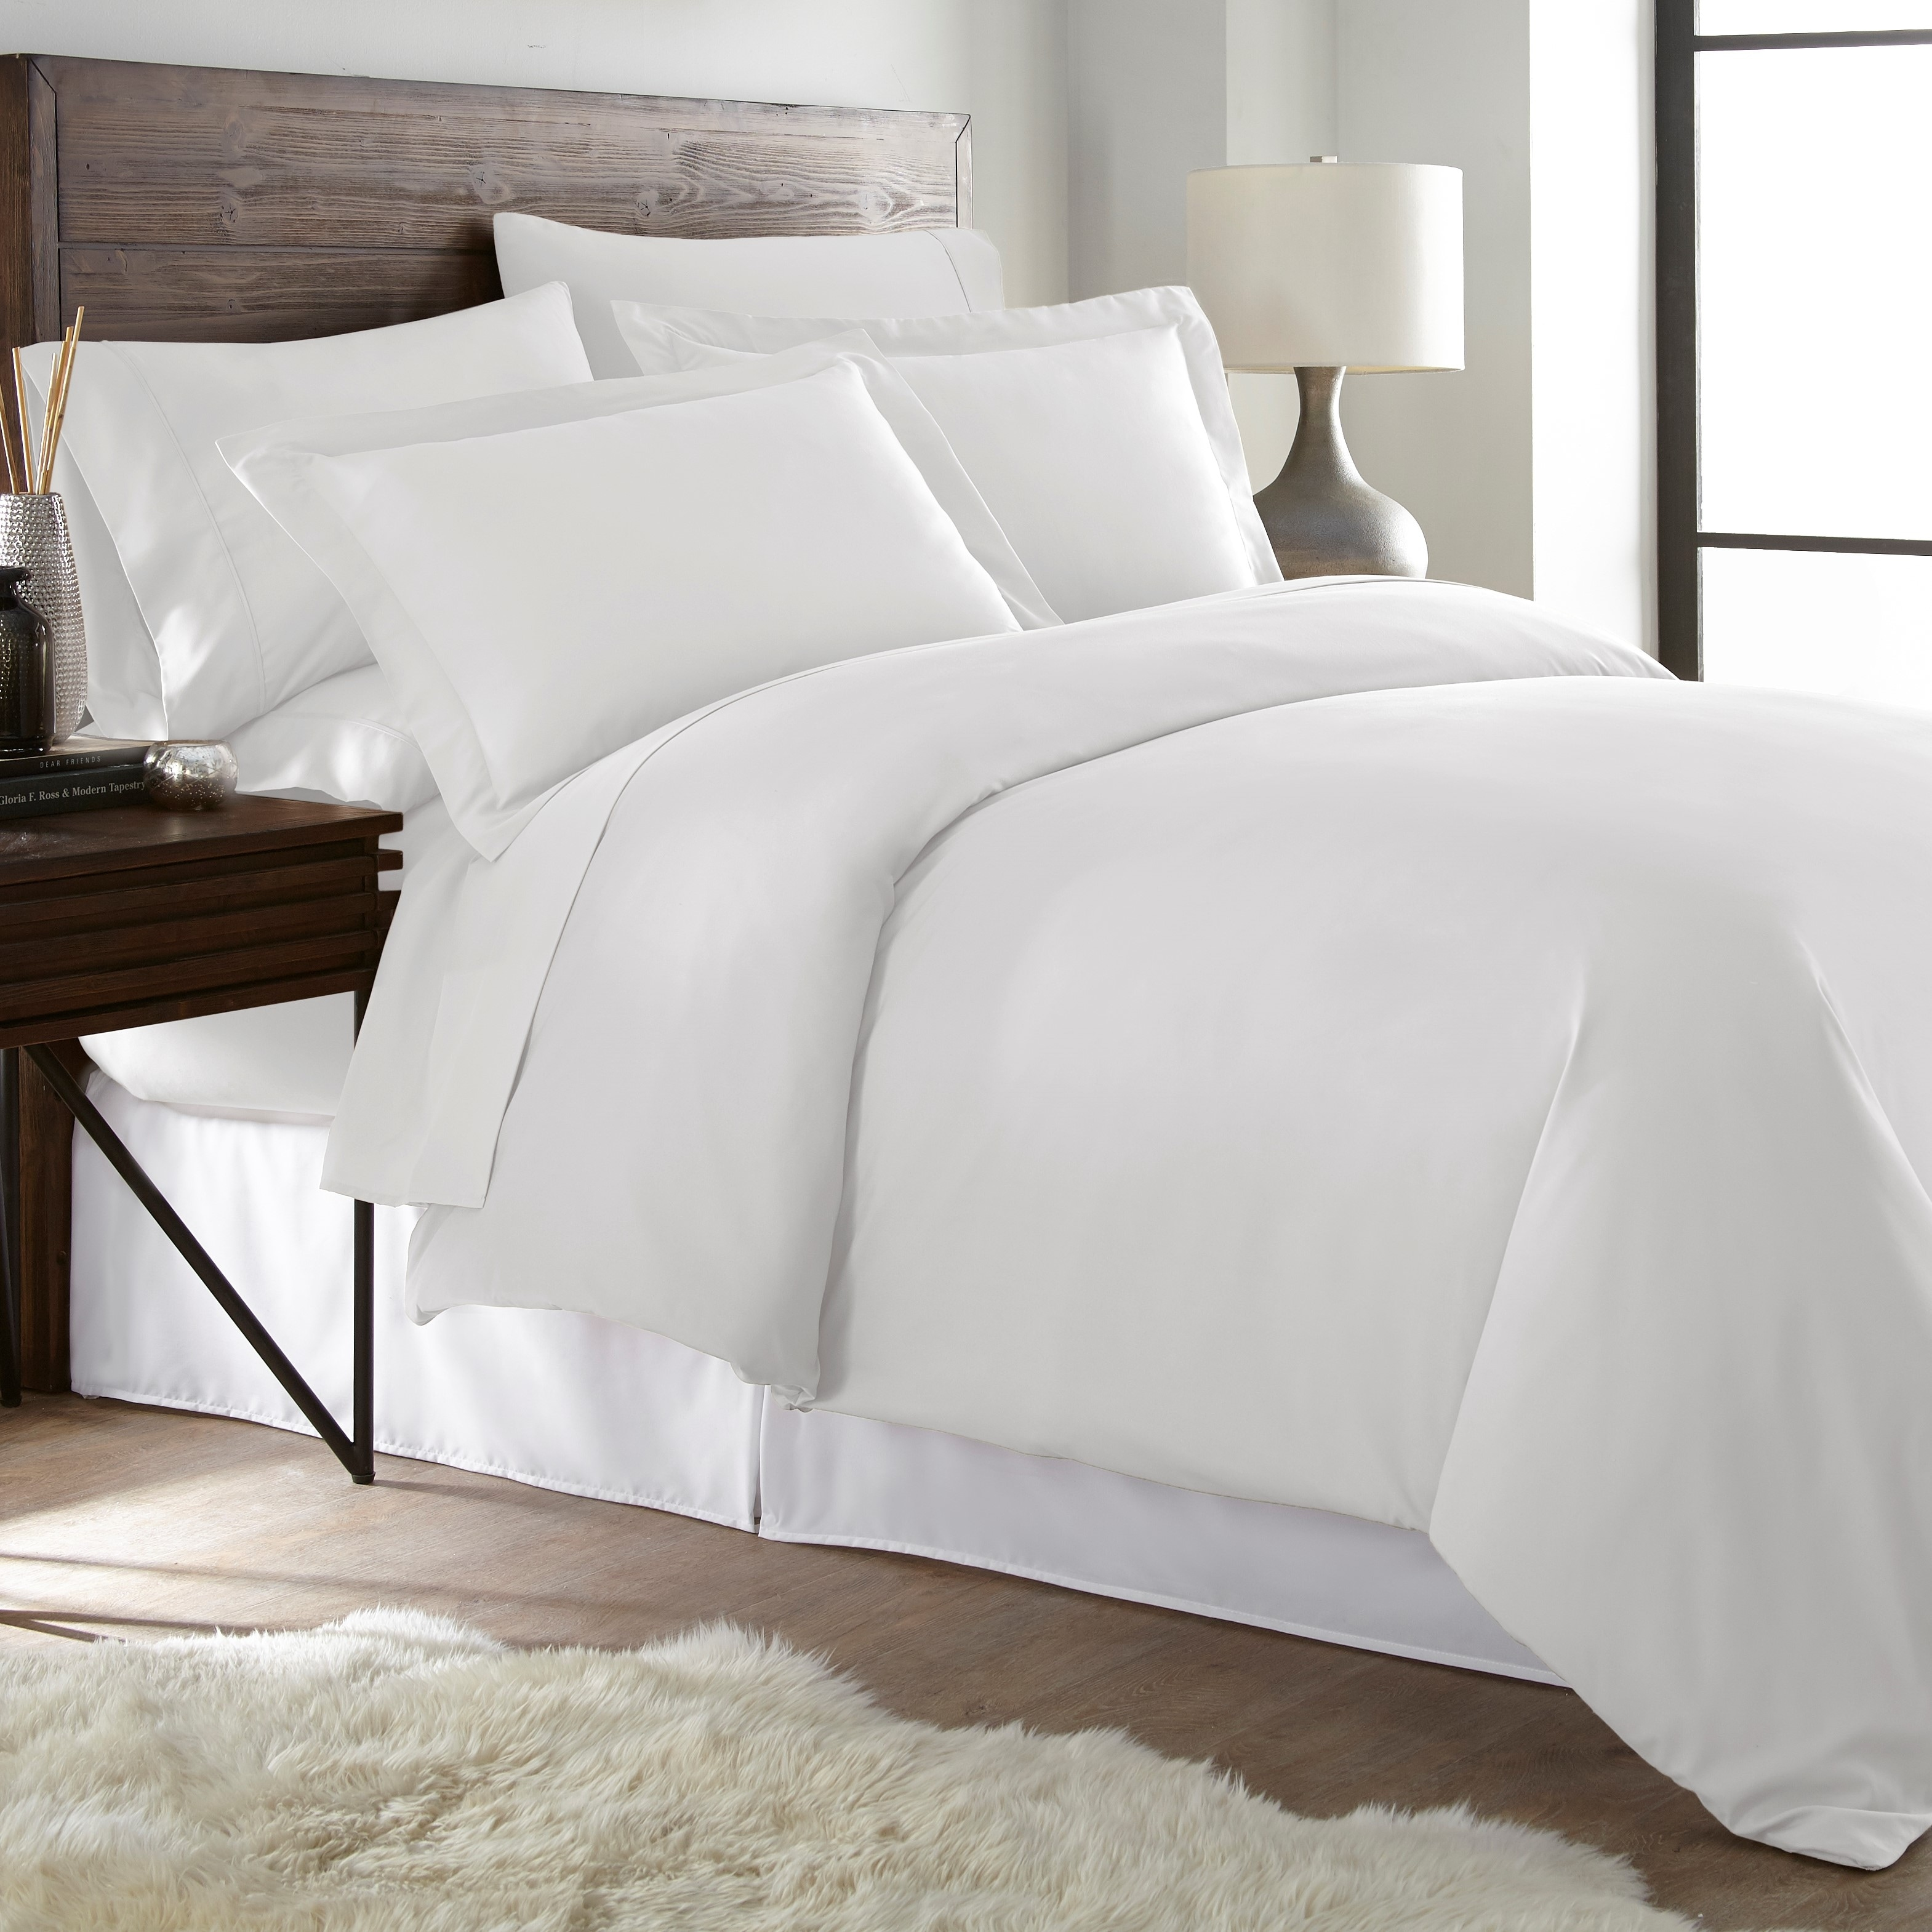 Soft Duvet Covers Hotel Luxury Ultra Soft 3pc Duvet Cover Set 1500 Series Premium Collection